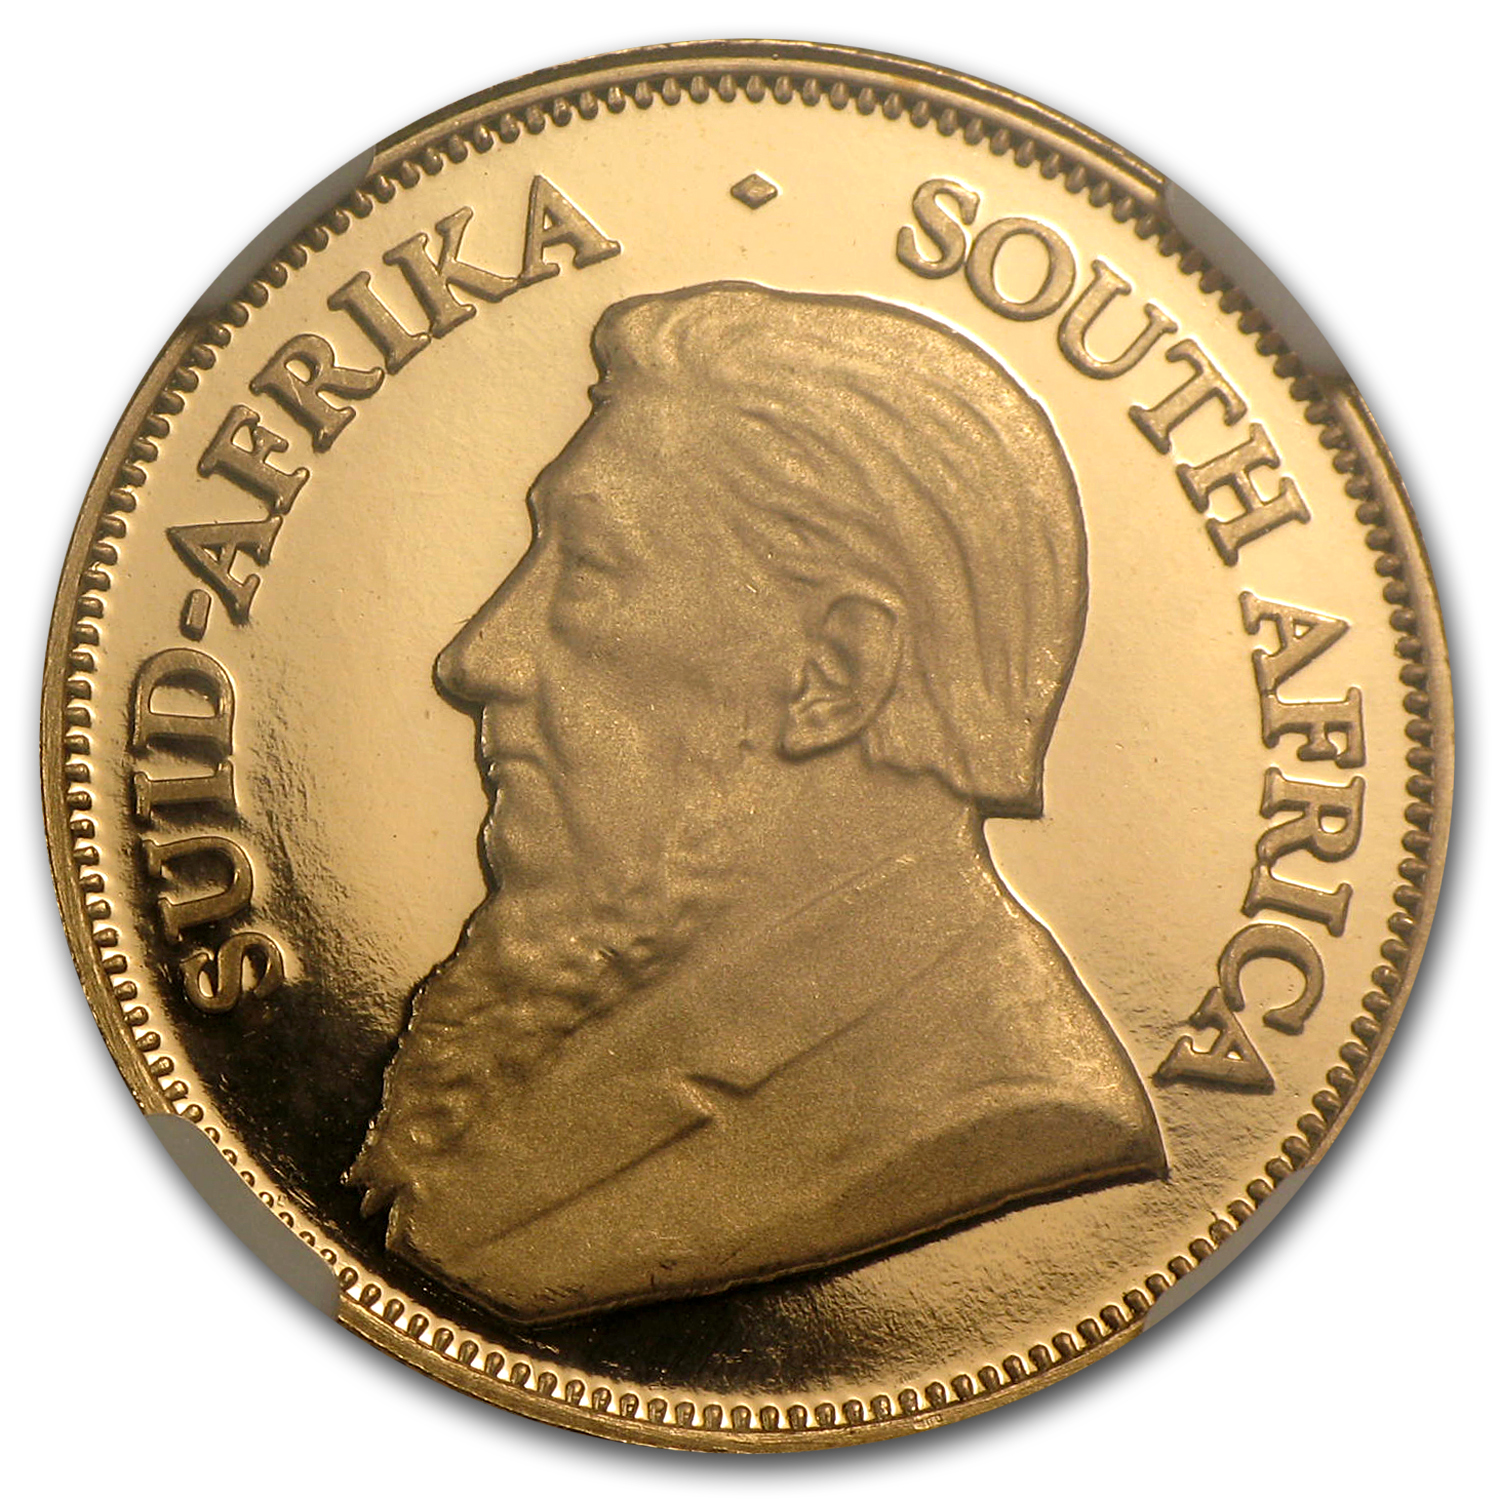 2004 South Africa 1/4 oz Gold Krugerrand PF-66 NGC